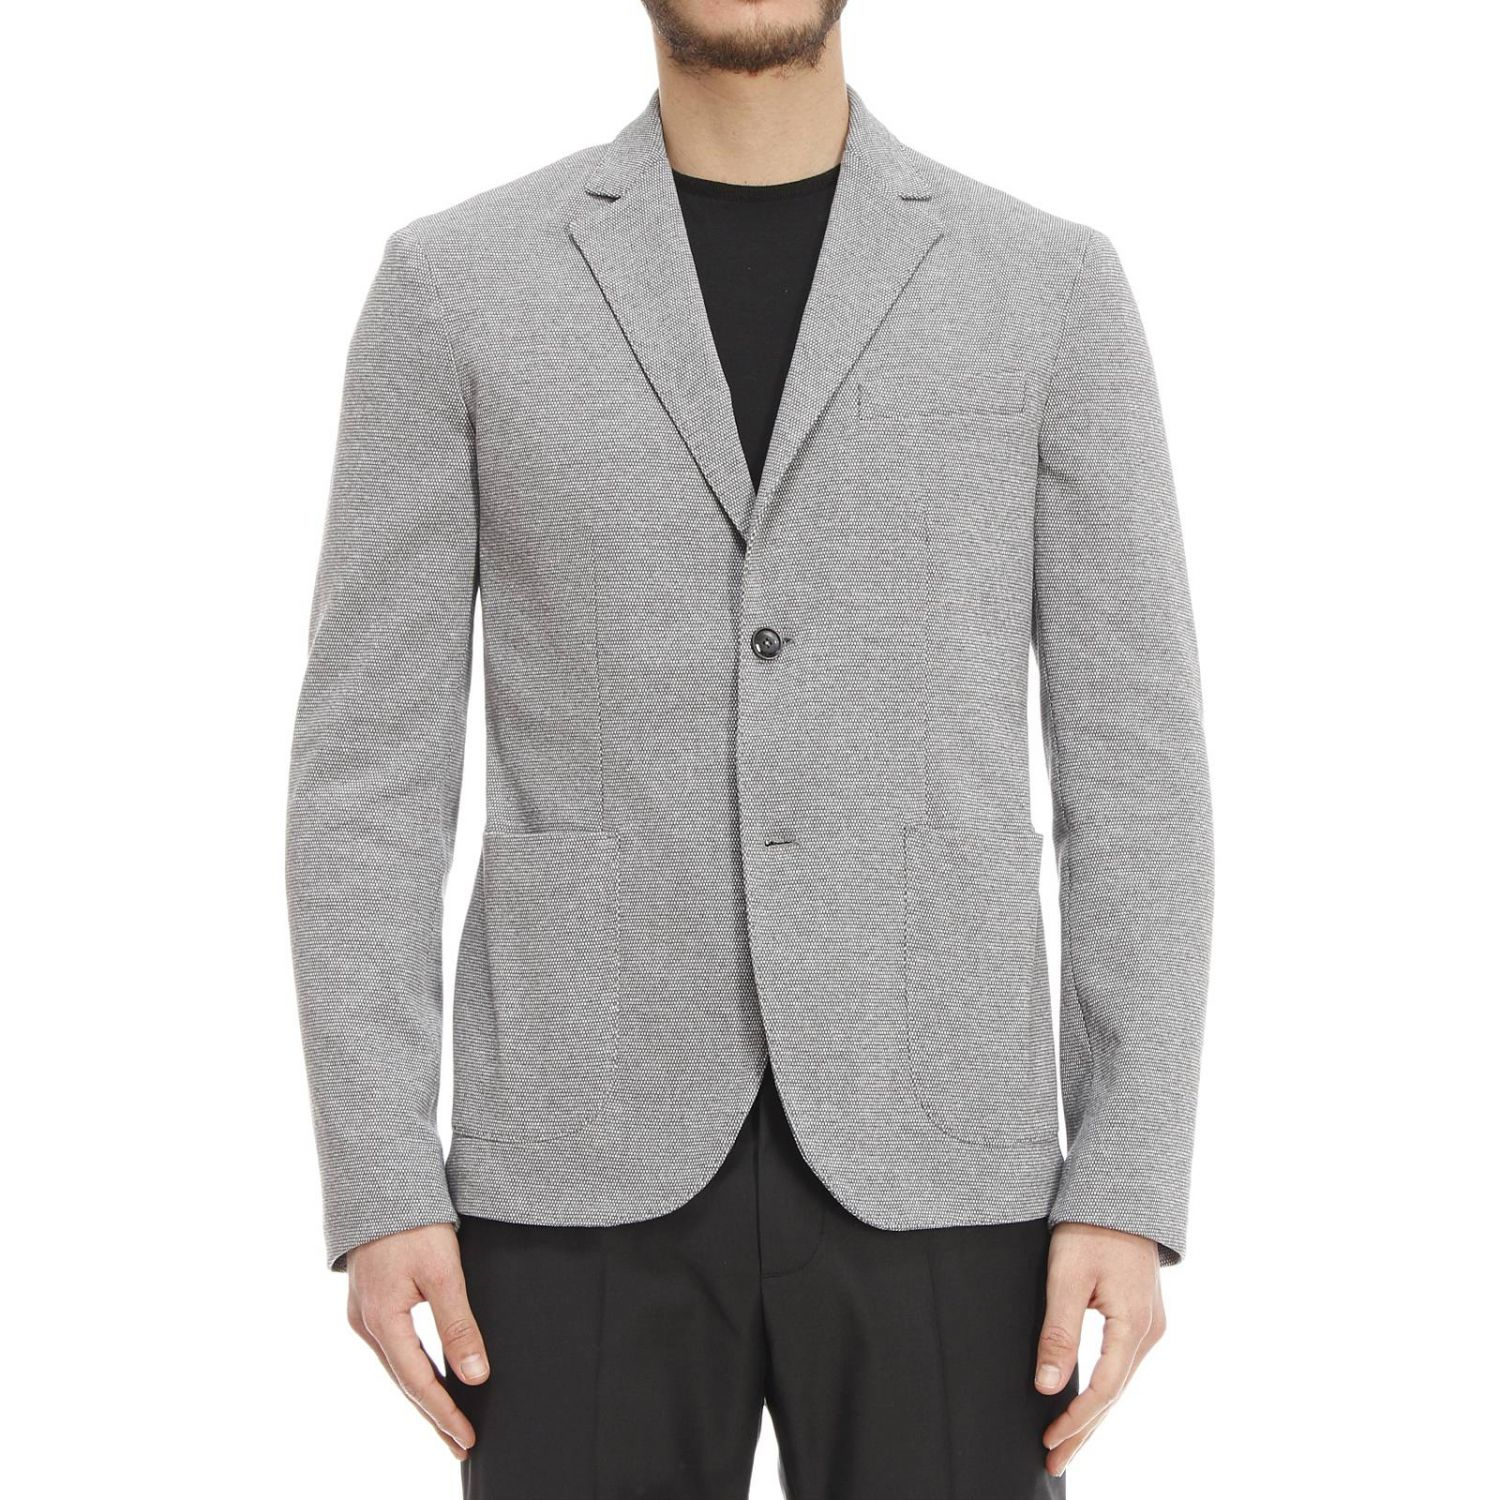 Do you know the difference between a Sport, Blazer, and Suit Jacket? This post explains the differences between three essential items in a man's wardrobe. Do you know the difference between a Sport, Blazer, and Suit Jacket? Gray flannel trousers, chinos and even dark jeans are all great items to pair with a blazer. Covered twill and.